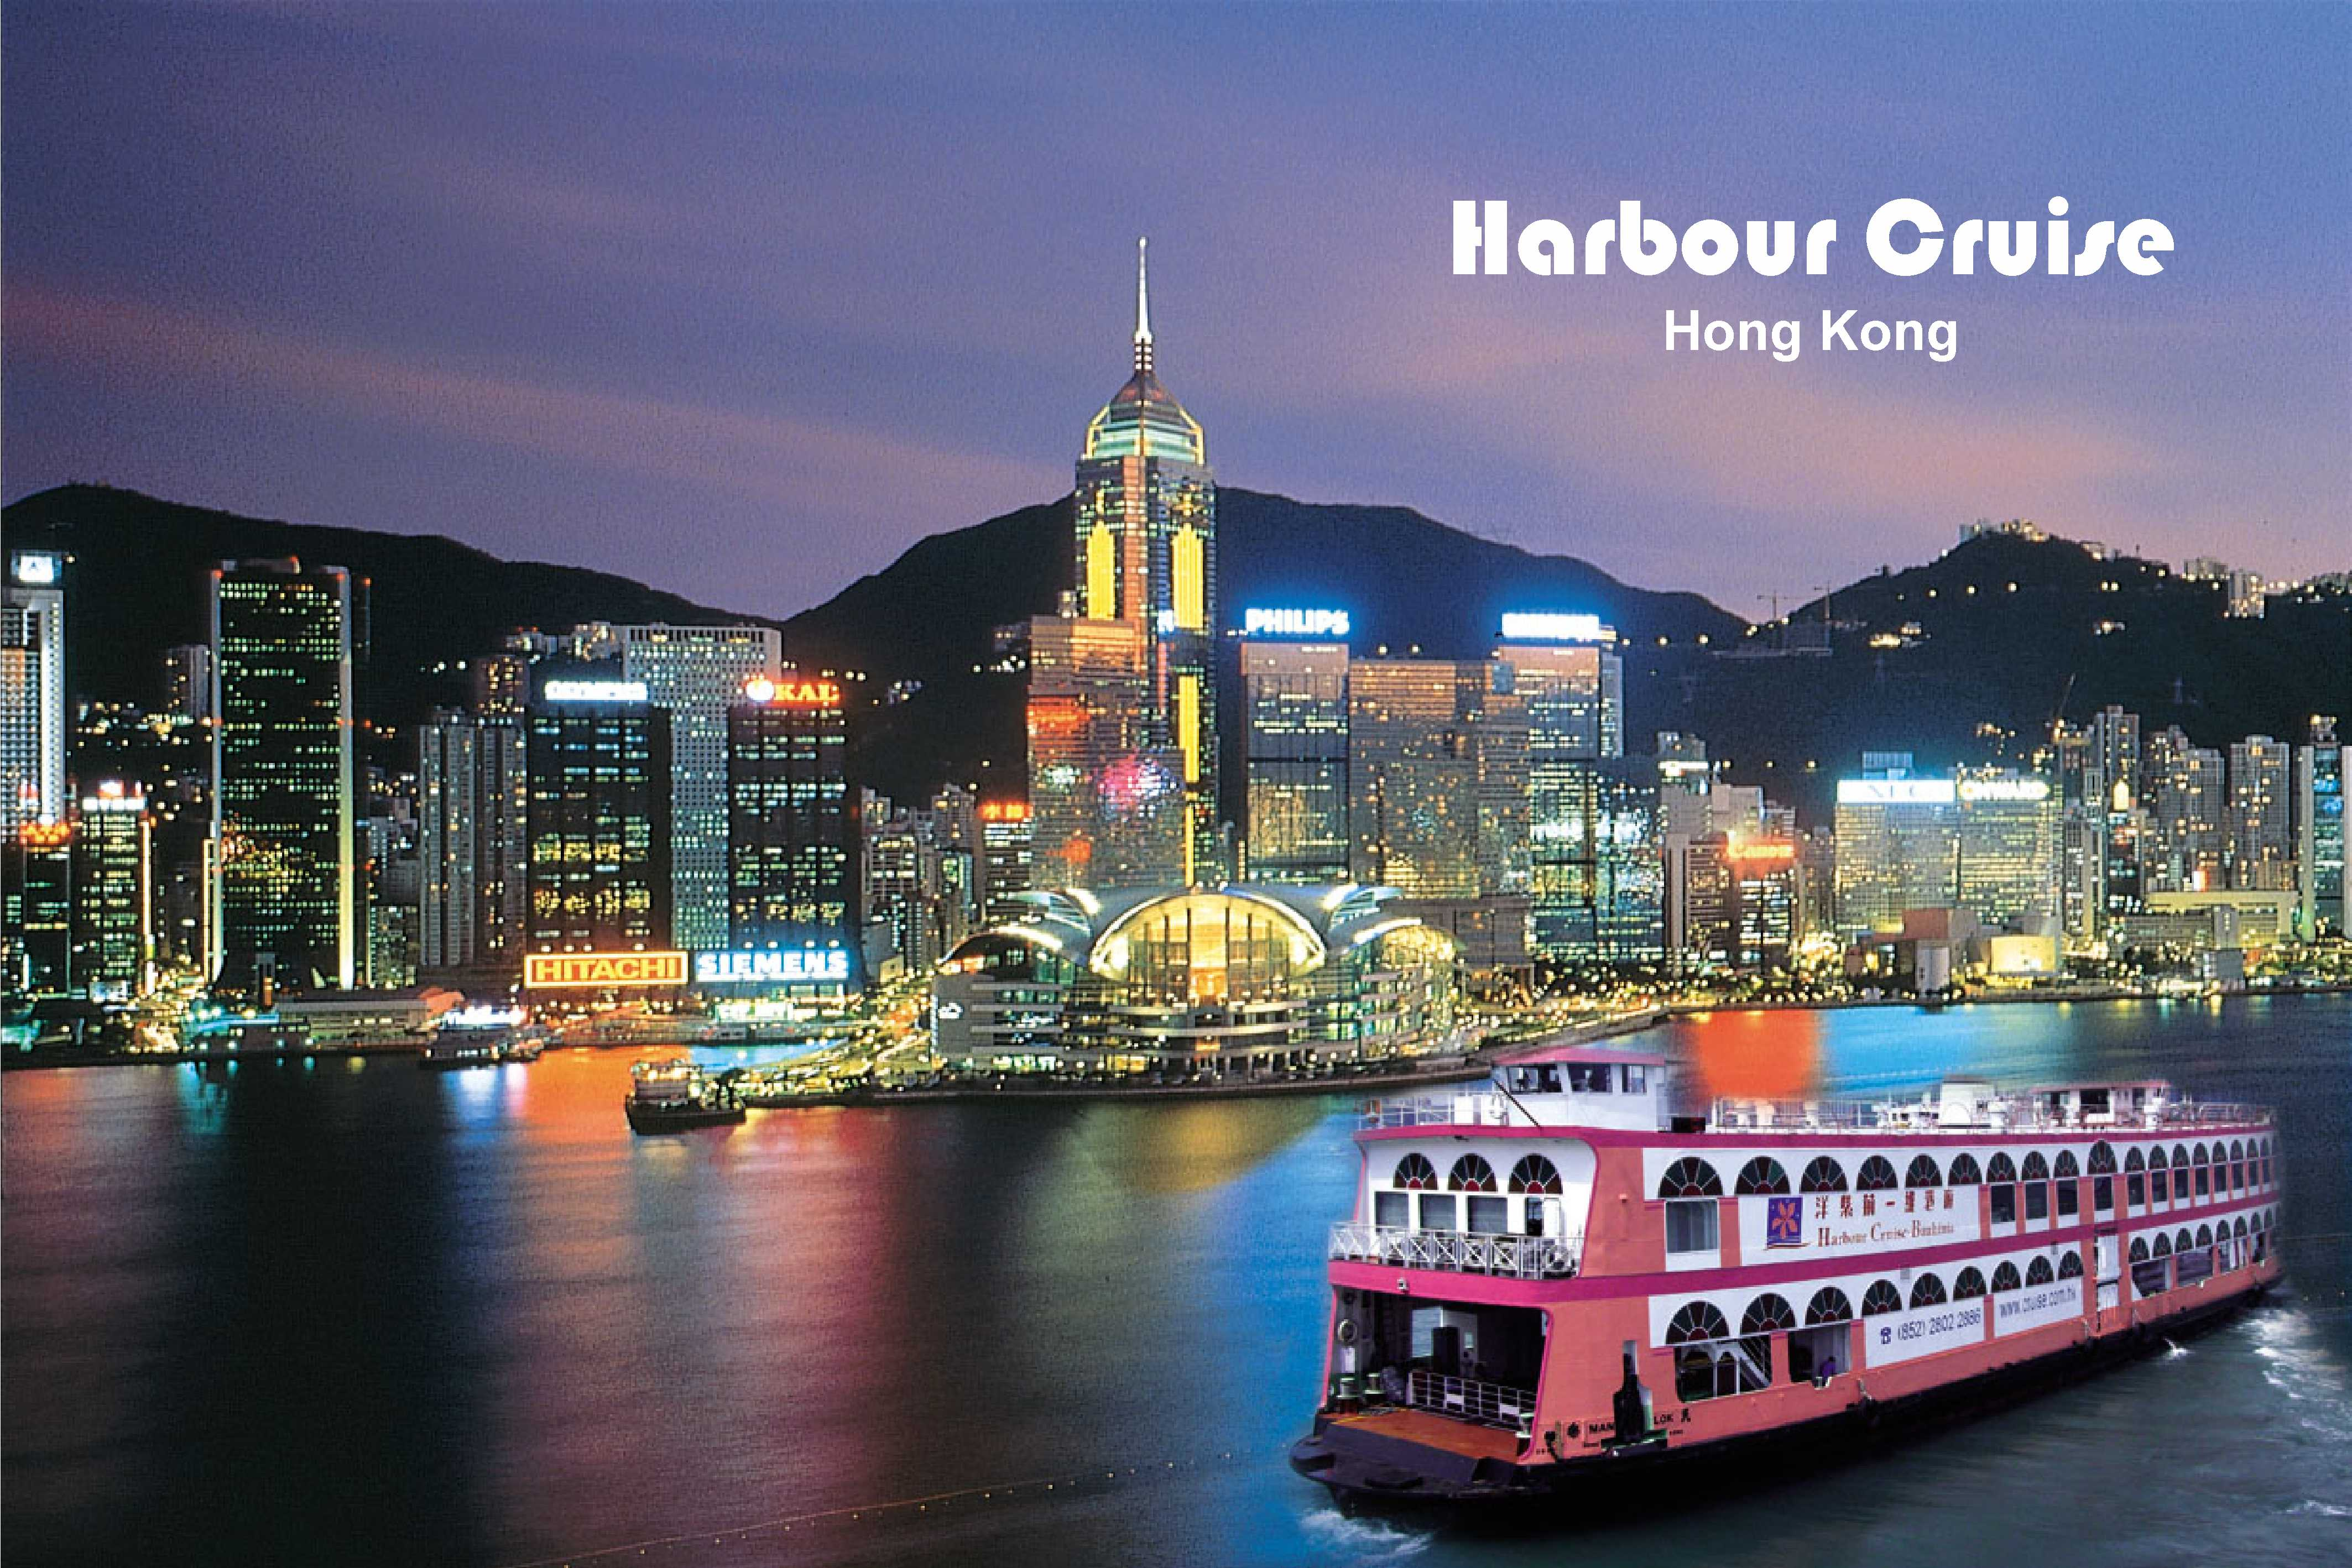 Harbour Cruise Hong Kong